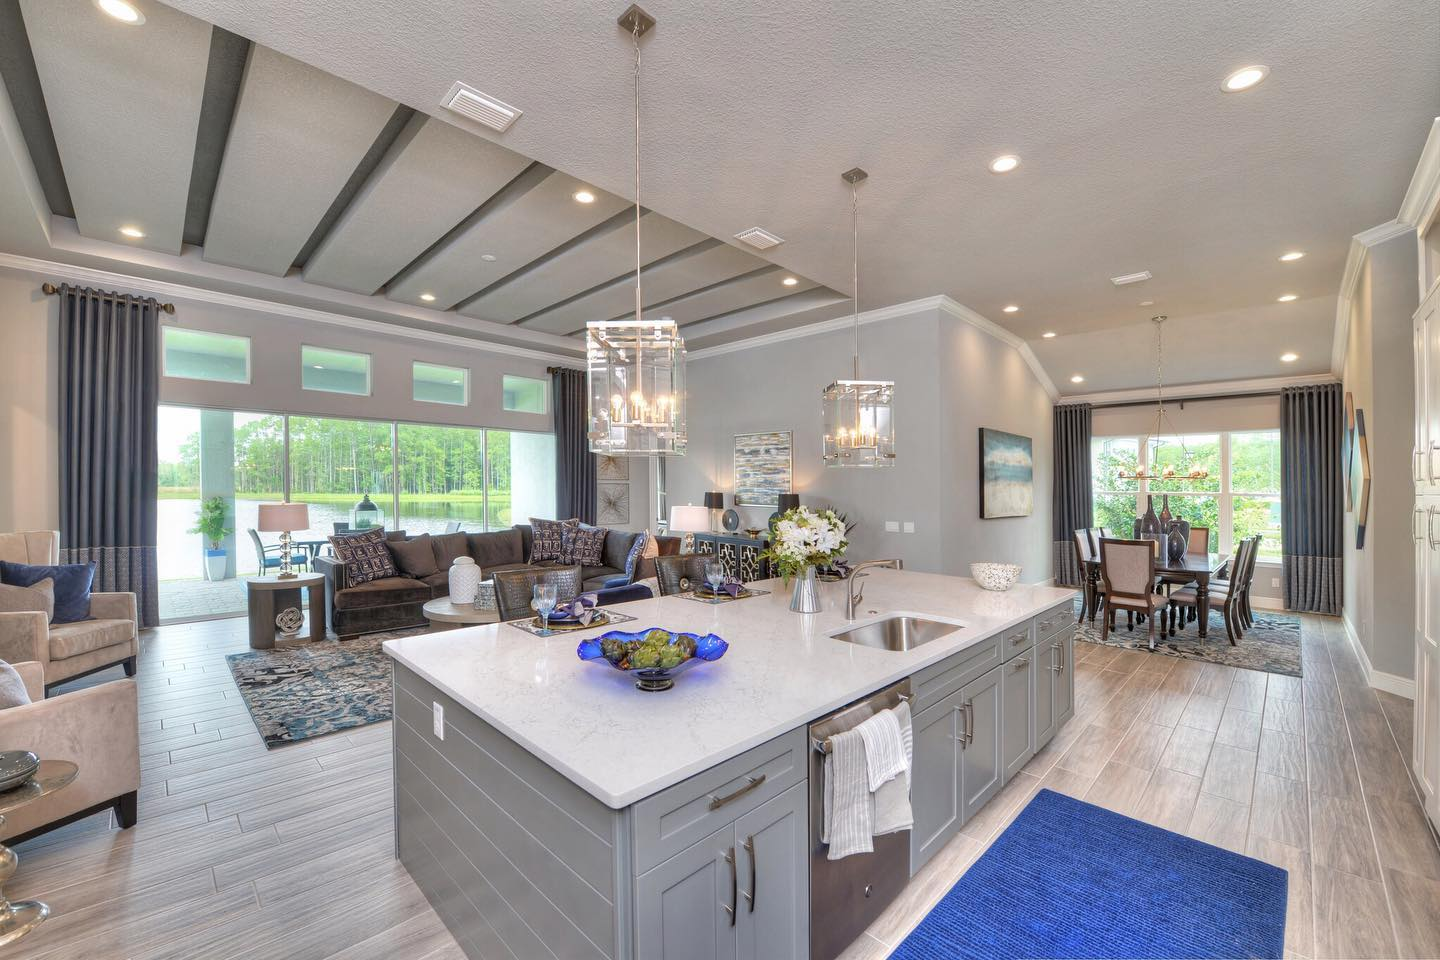 The Laker/Lutz News – New ICI Homes Model